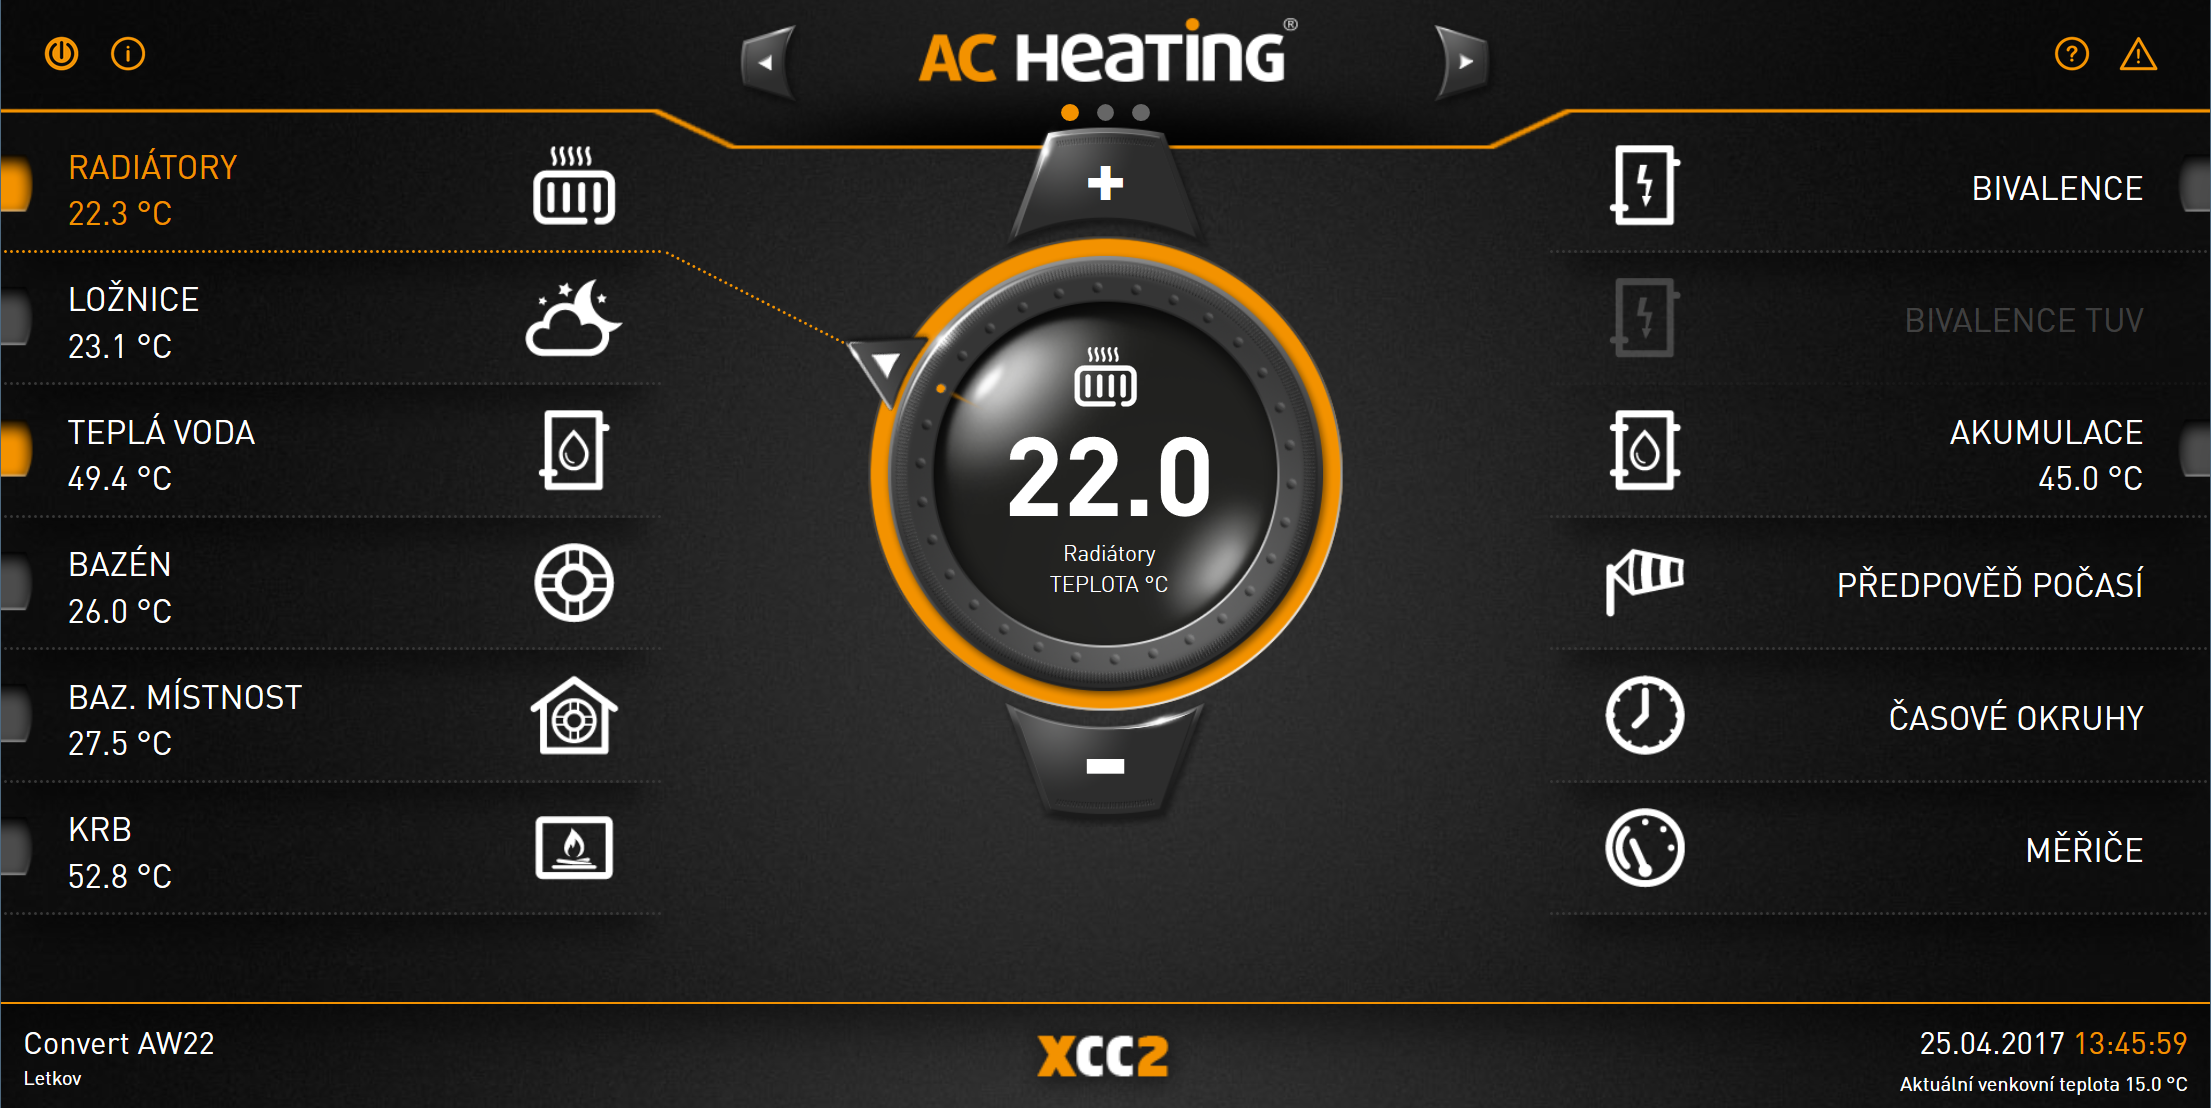 xcc2 screen_AC Heating_ regulace_2